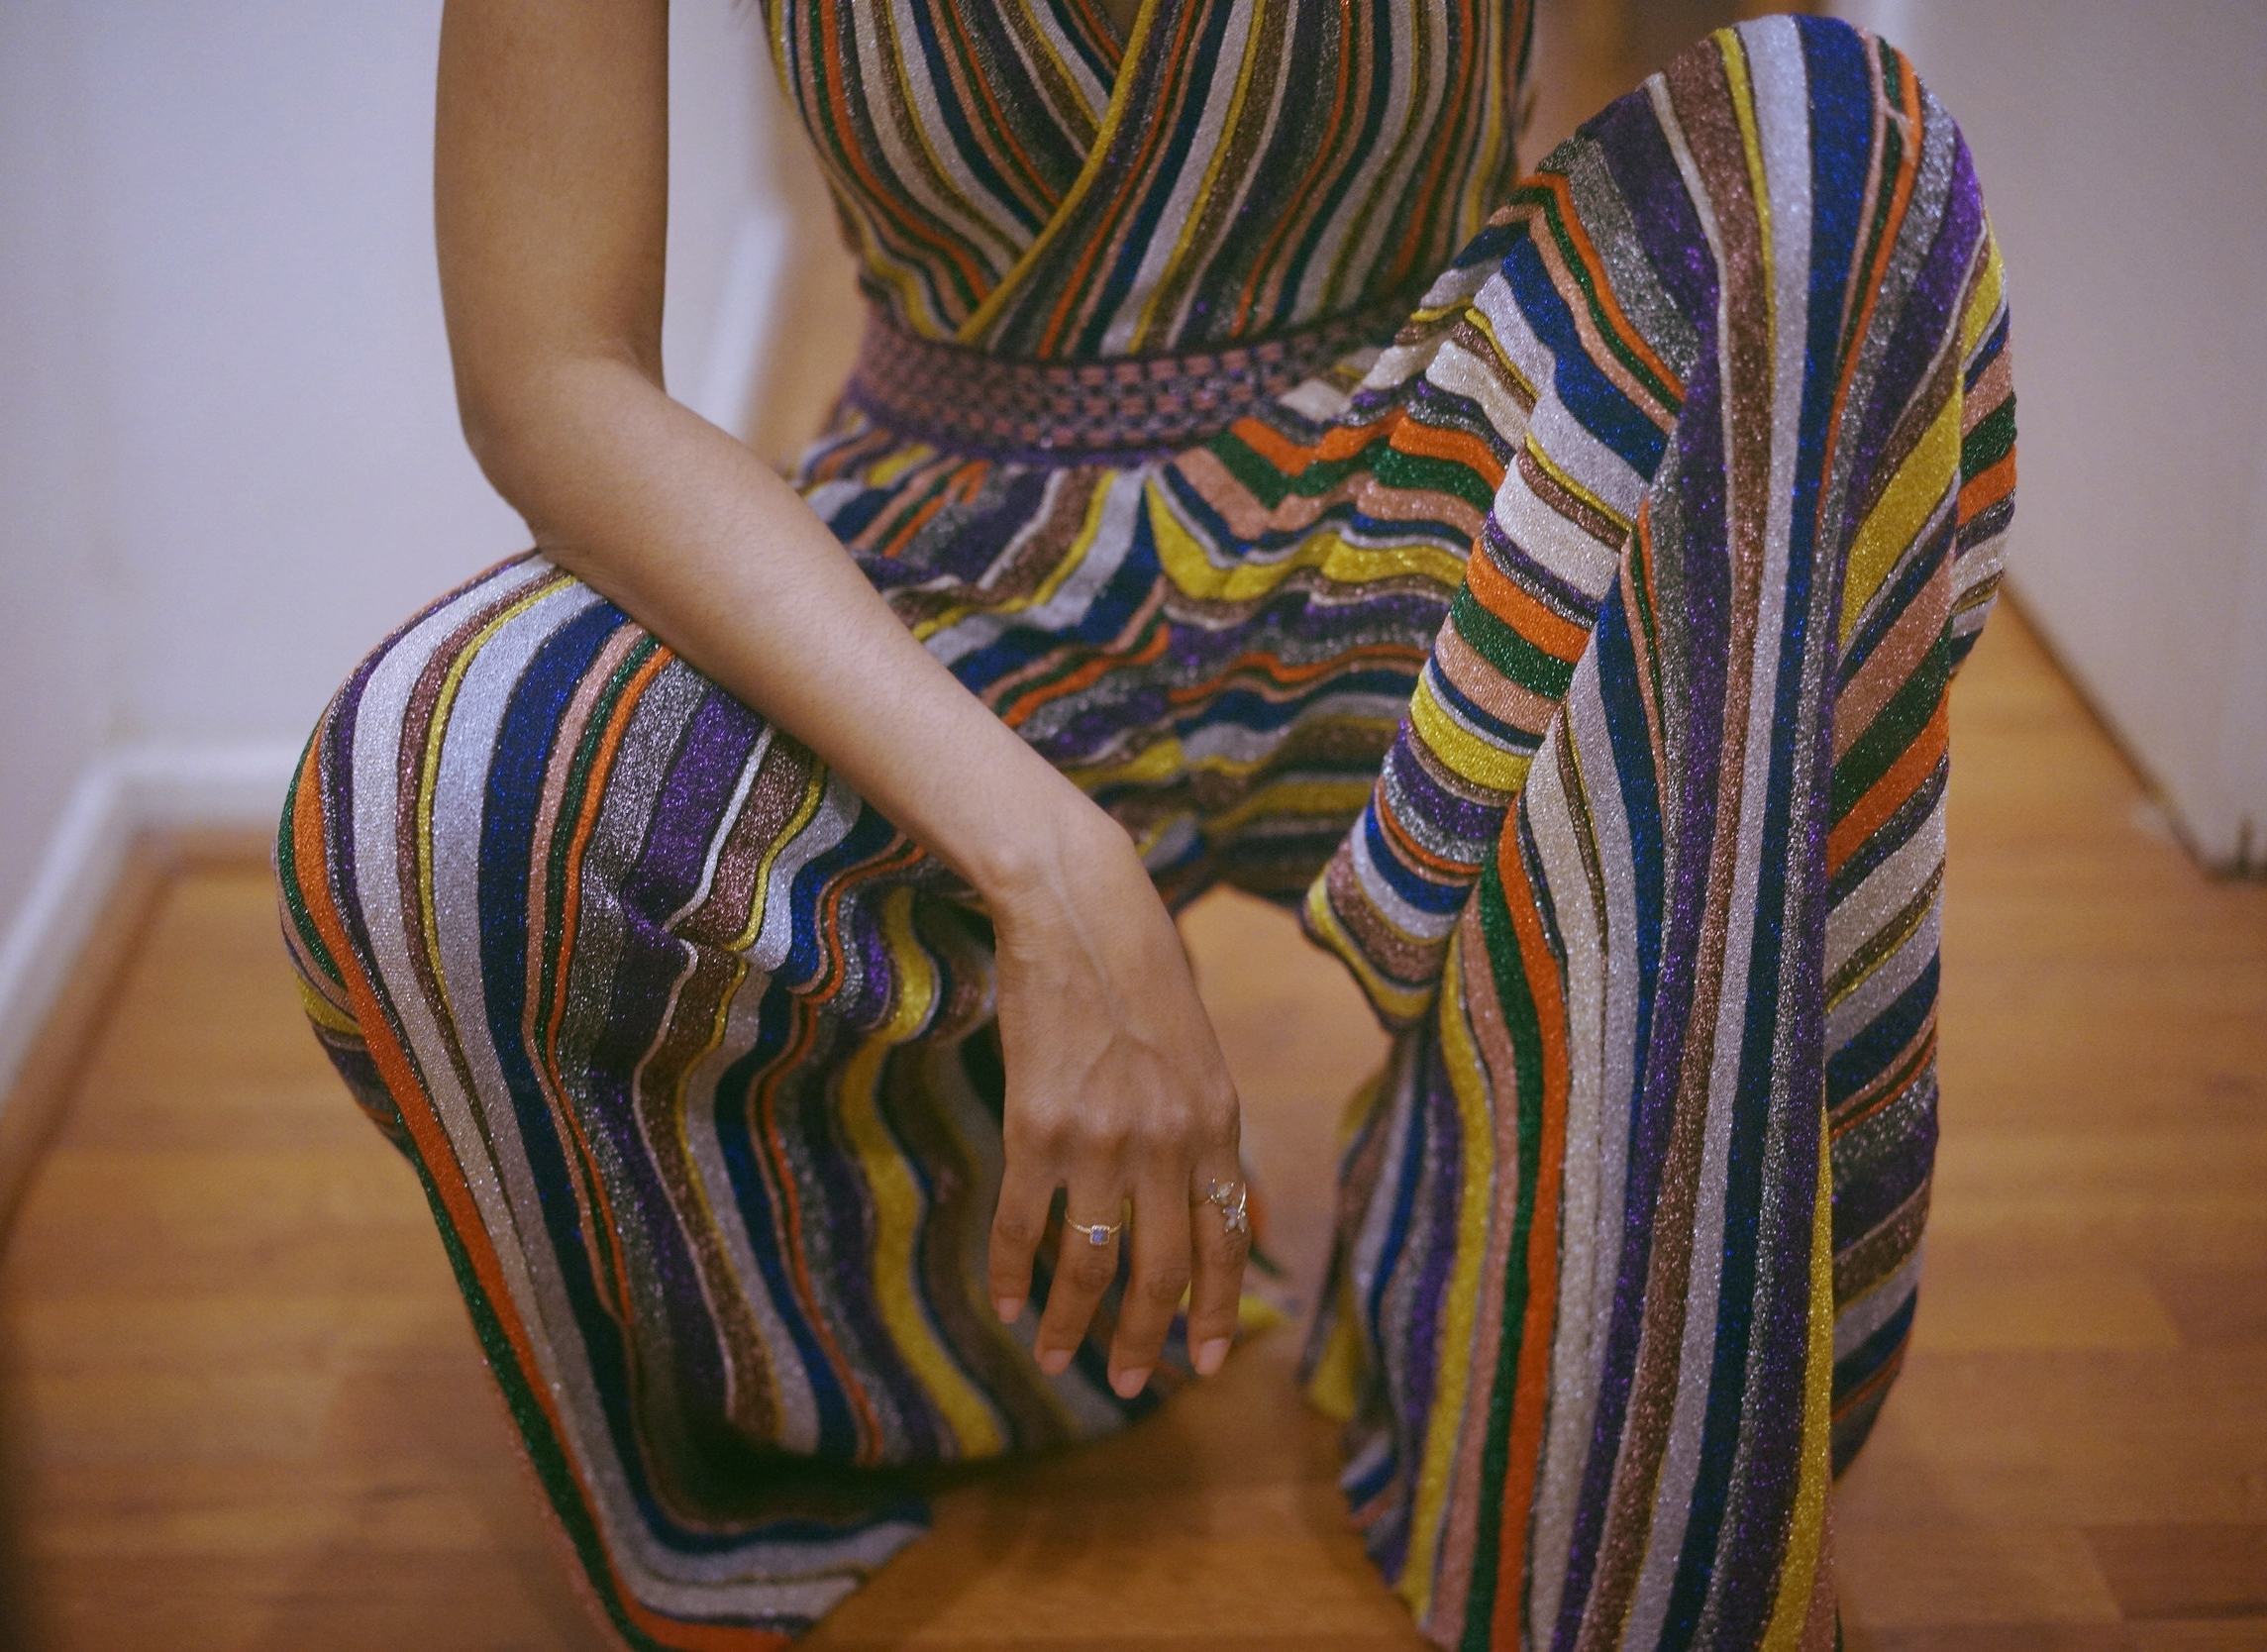 Christine_The_Style_D'affaire_metallic_multicolored_jumpsuit_casual_cool_chic_Tai_Rosita_Missoni_design_nature_art_architecture_modern_cultures_Italian_flair_eveningwear_ bohemian_sophisticated_wearability_versatility_comfortable_fit_m_missoni_brands_timeless_summer_capsule_collection.jpg